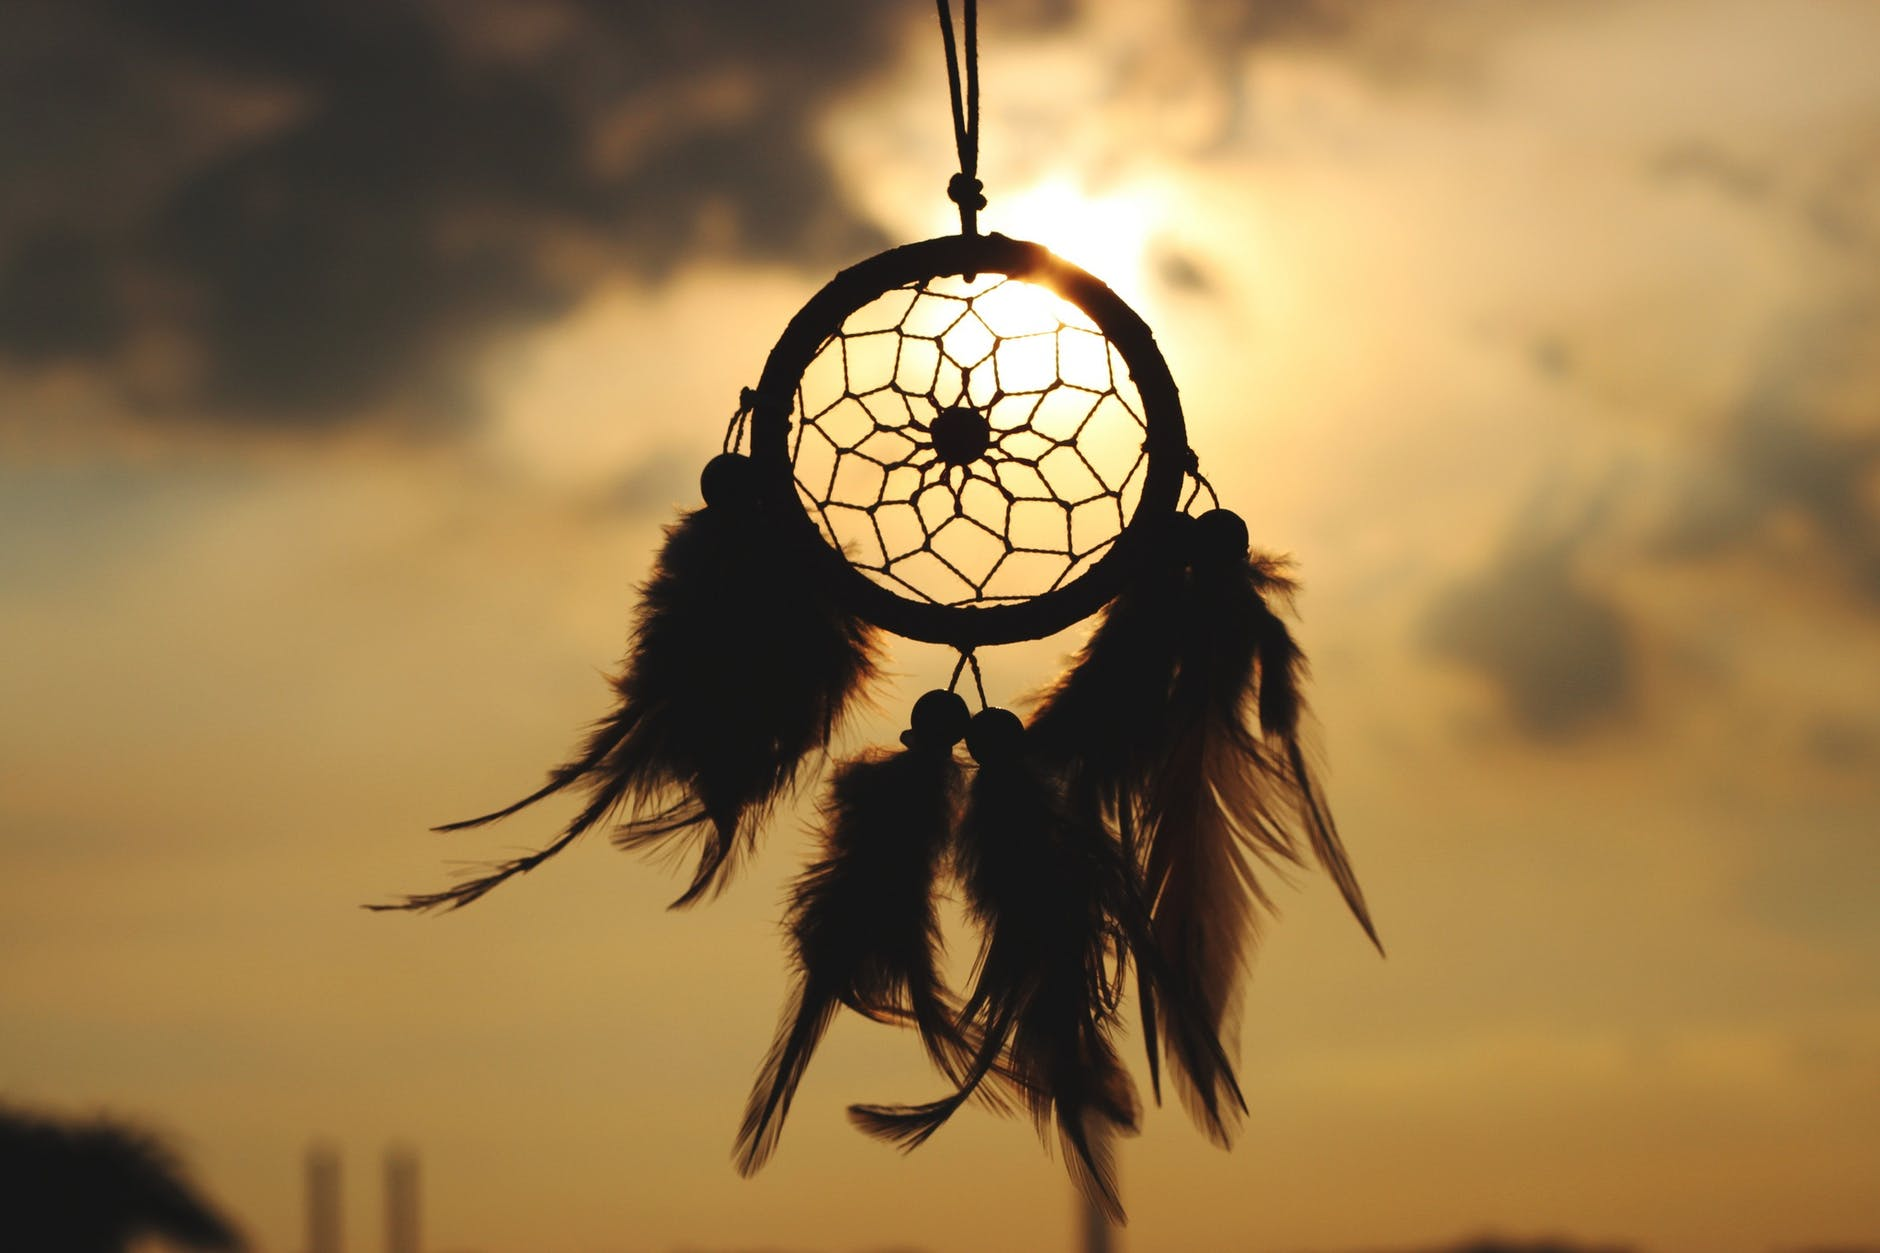 Dreamcatcher in darkened sky